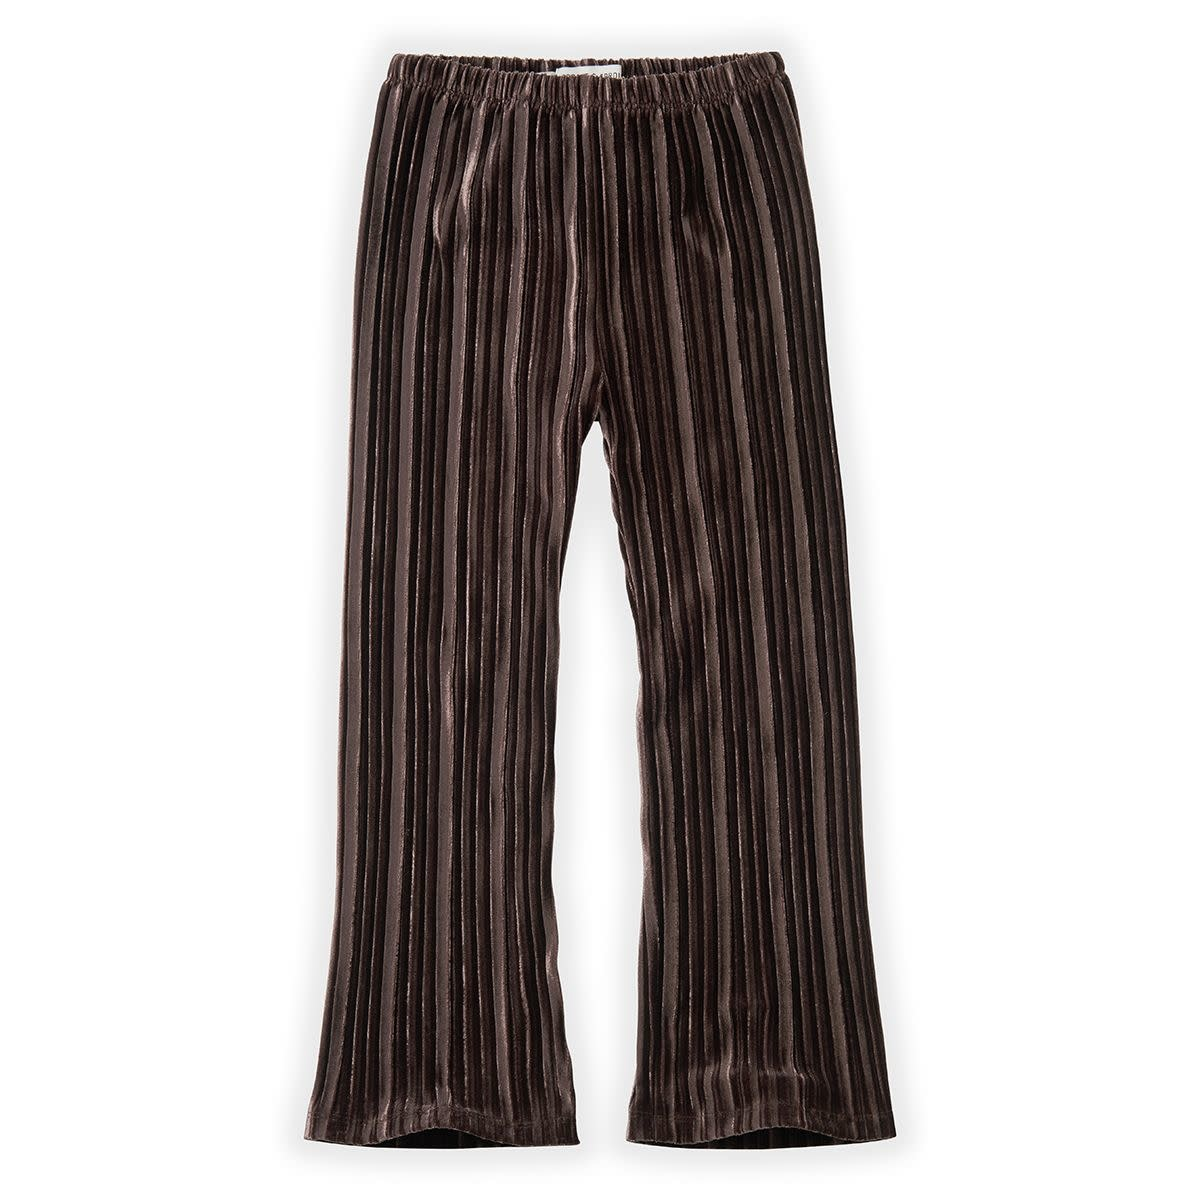 Sproet & Sprout Sproet&Sprout - Pants velvet pleats chocolate